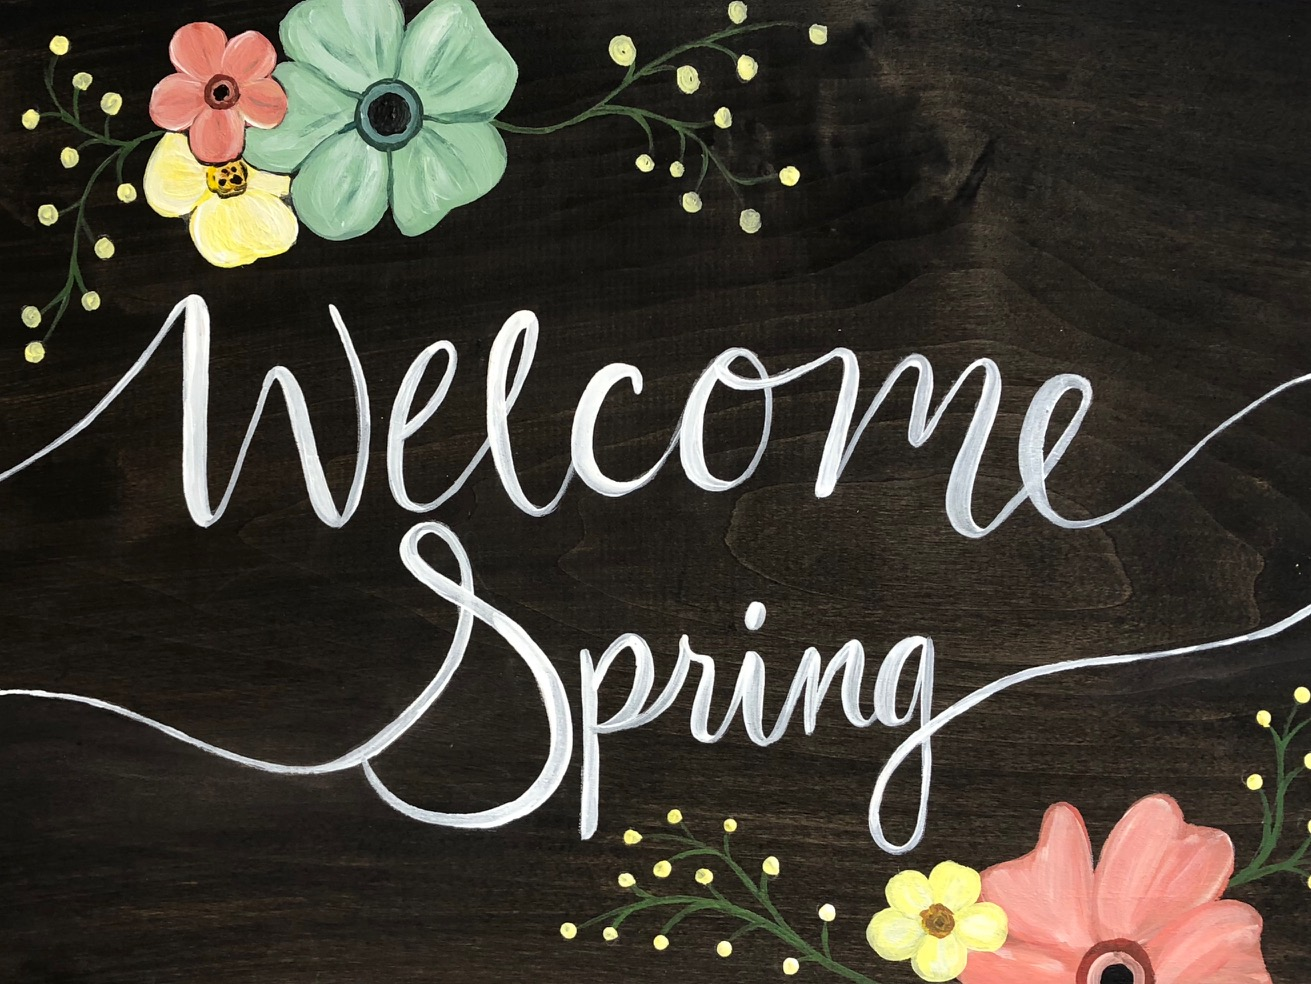 Welcome Spring 4.12 - Uncorked Creations   Binghamton